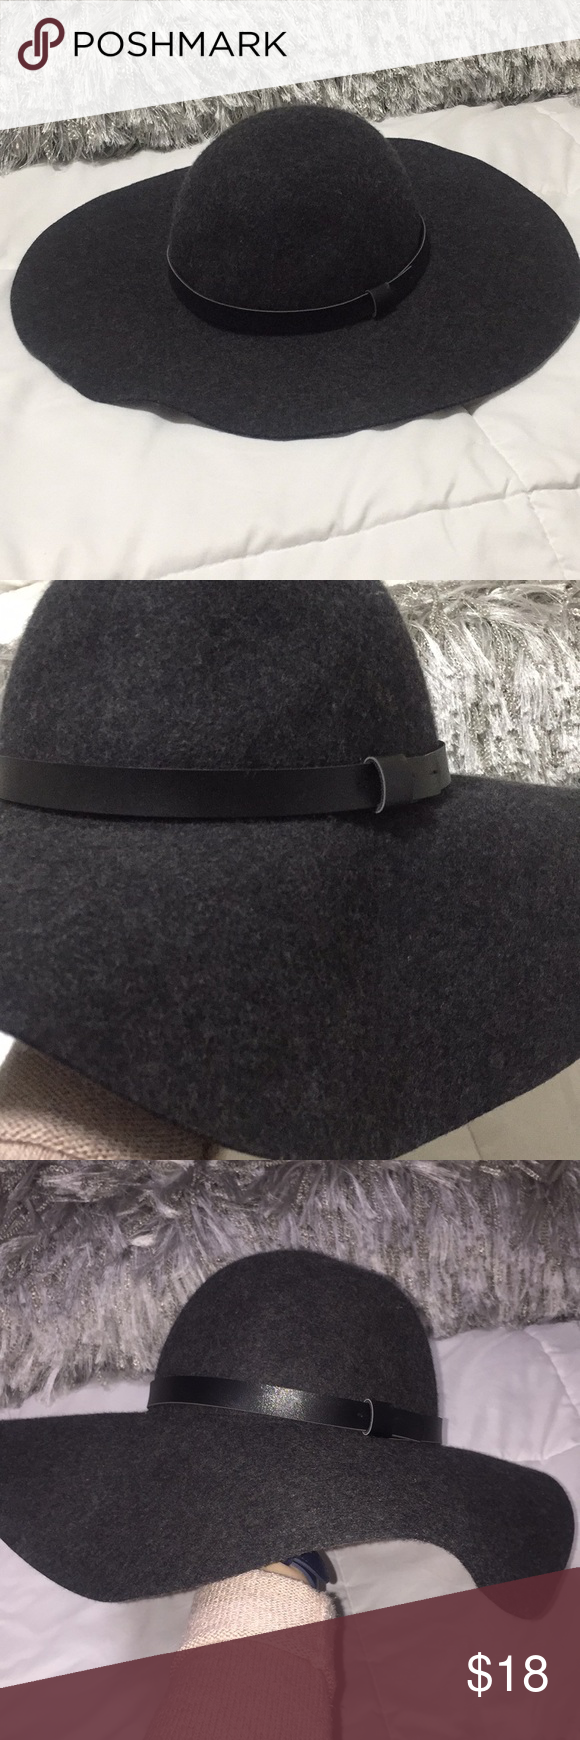 9cbef243fe19e H M Grey Wool Floppy Hat US L 58 Soft wool hat. Worn once. H M Accessories  Hats